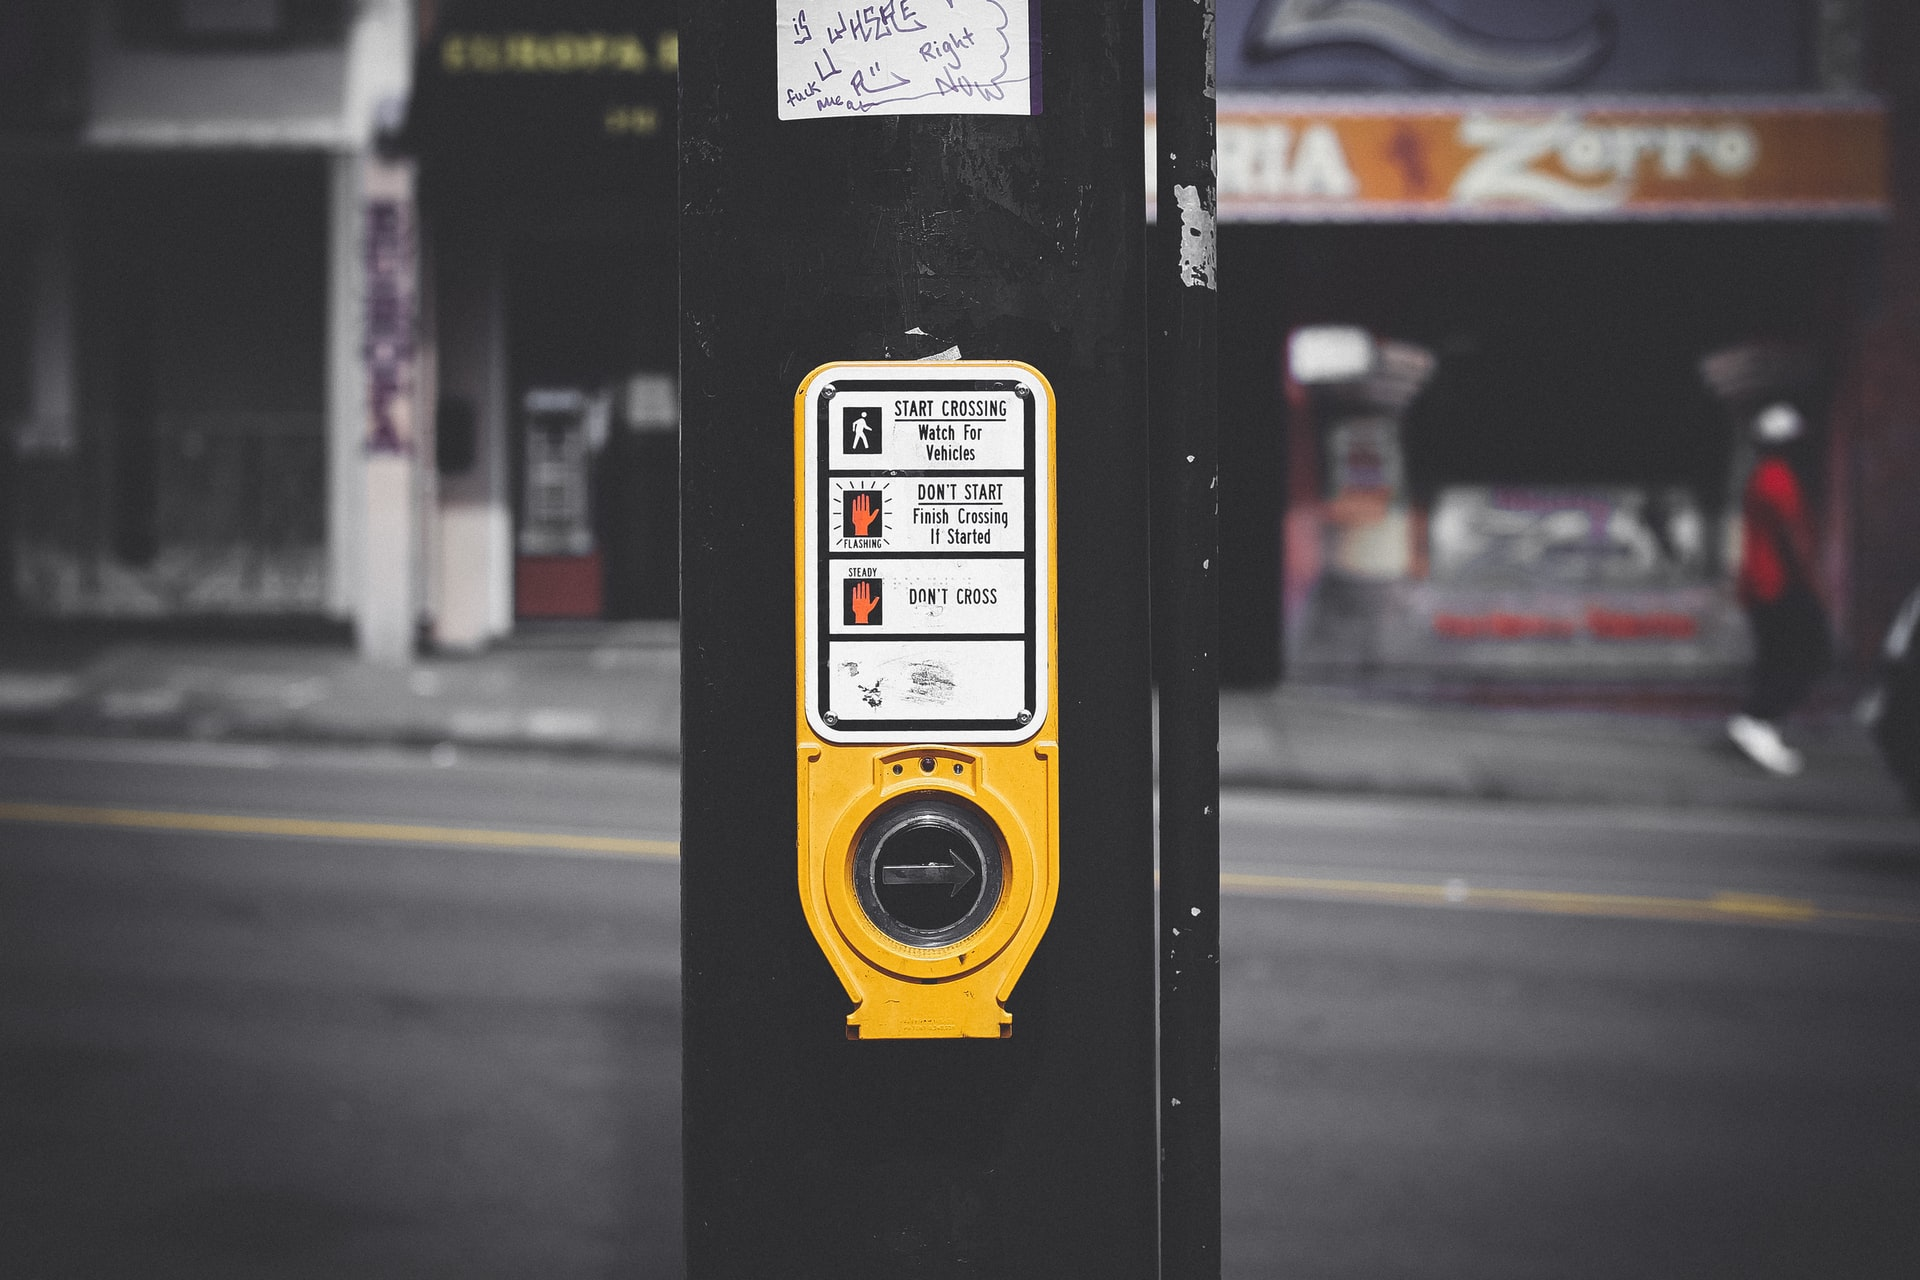 A button to activate a cross walk signal